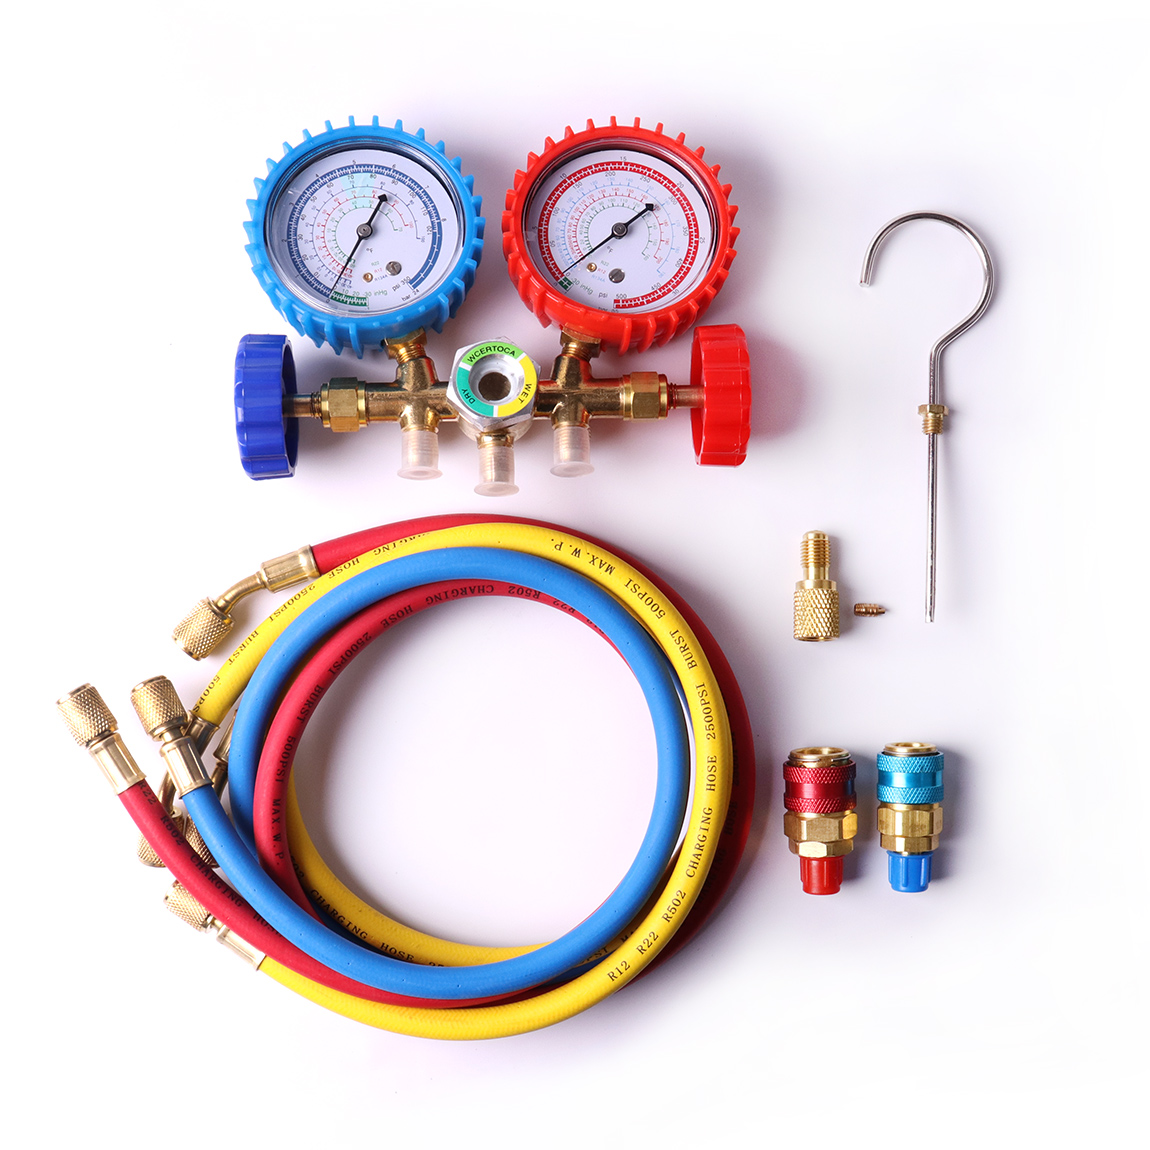 New Air Conditioning Red Blue H-L R134 Quick Couplers R12 R22 R502 and R134a A/C Manifold Brass Gauge Set with 3 Charging Hoses hot sale edison bulb vintage industrial lighting copper lamp holder pendant light american aisle lights lamp 220v light fixtures